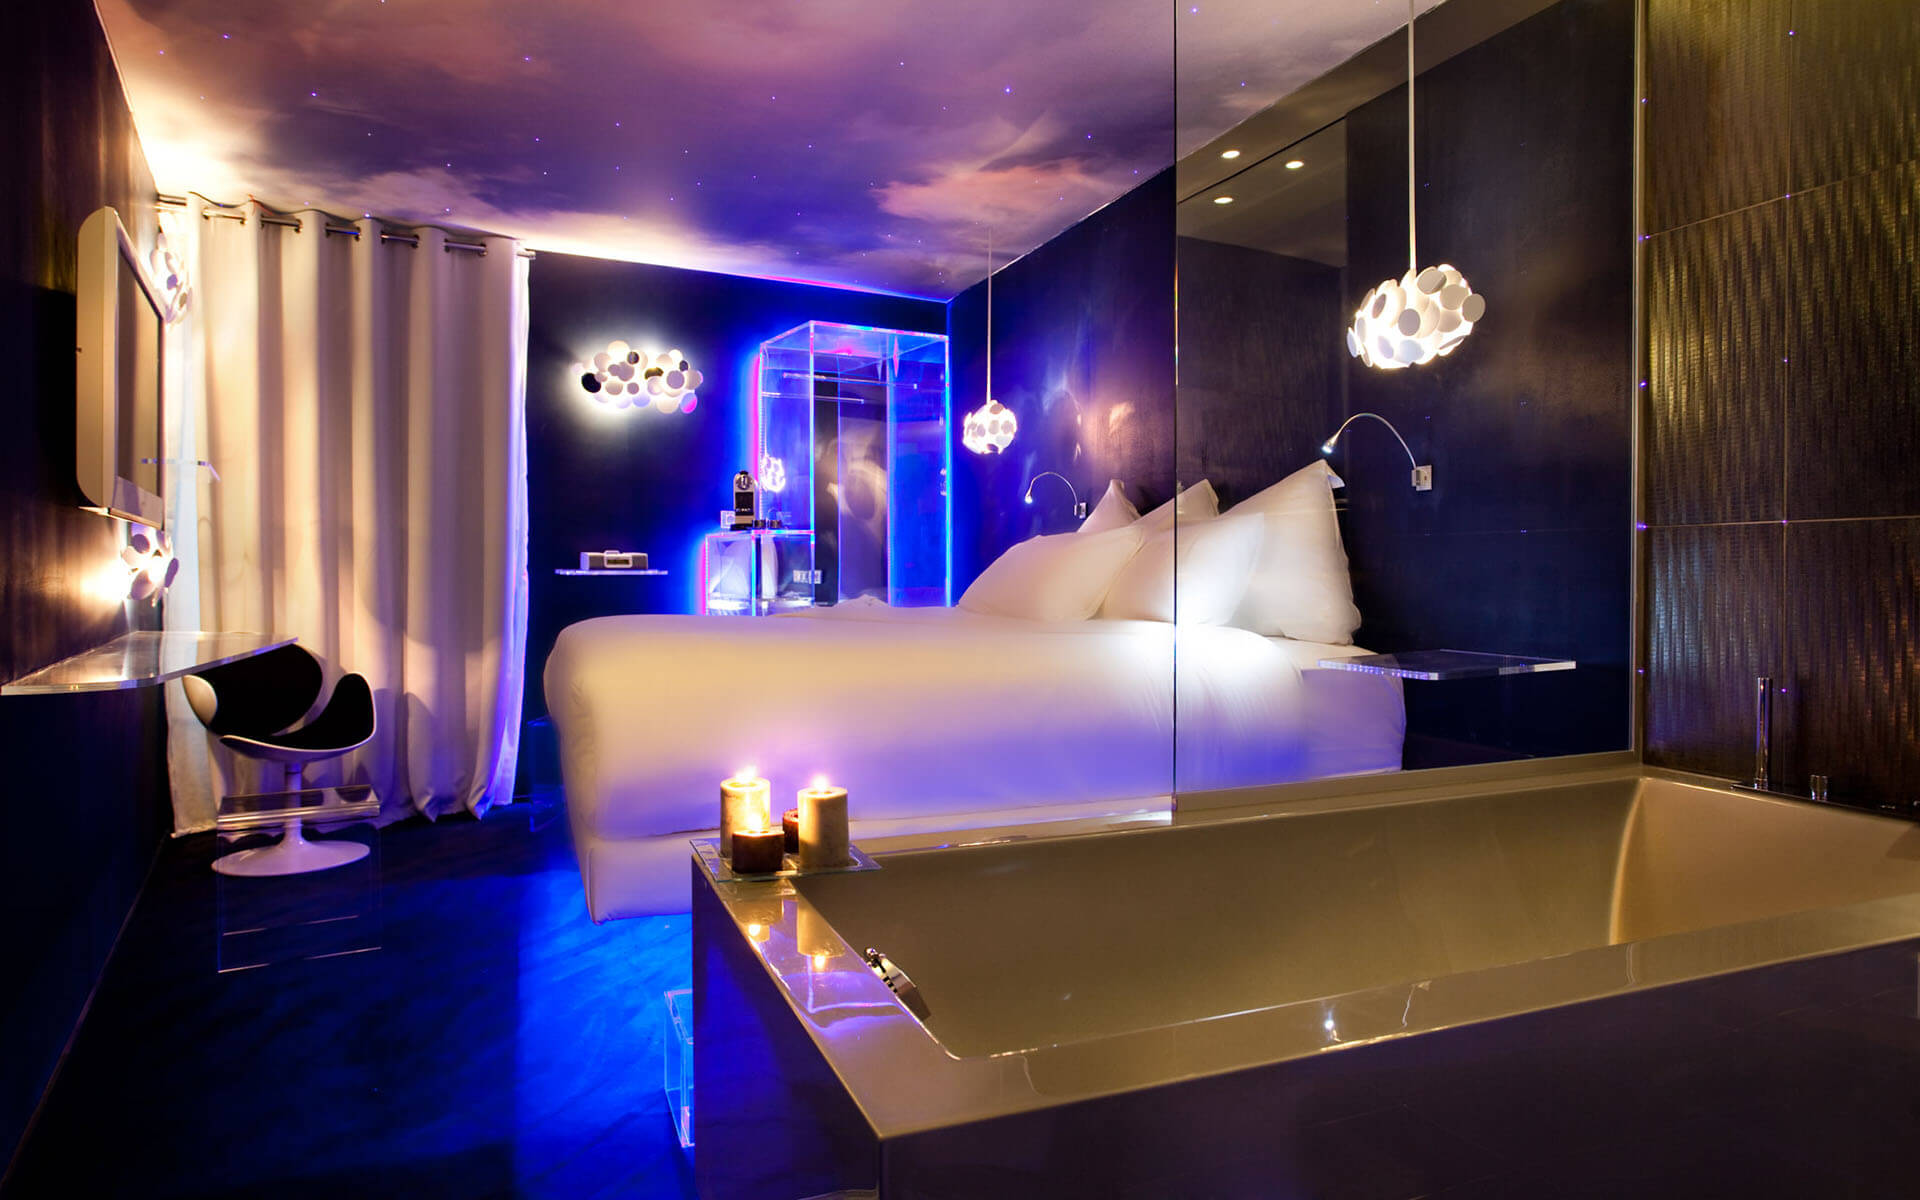 Hotels With Jacuzzi In Room In Paris